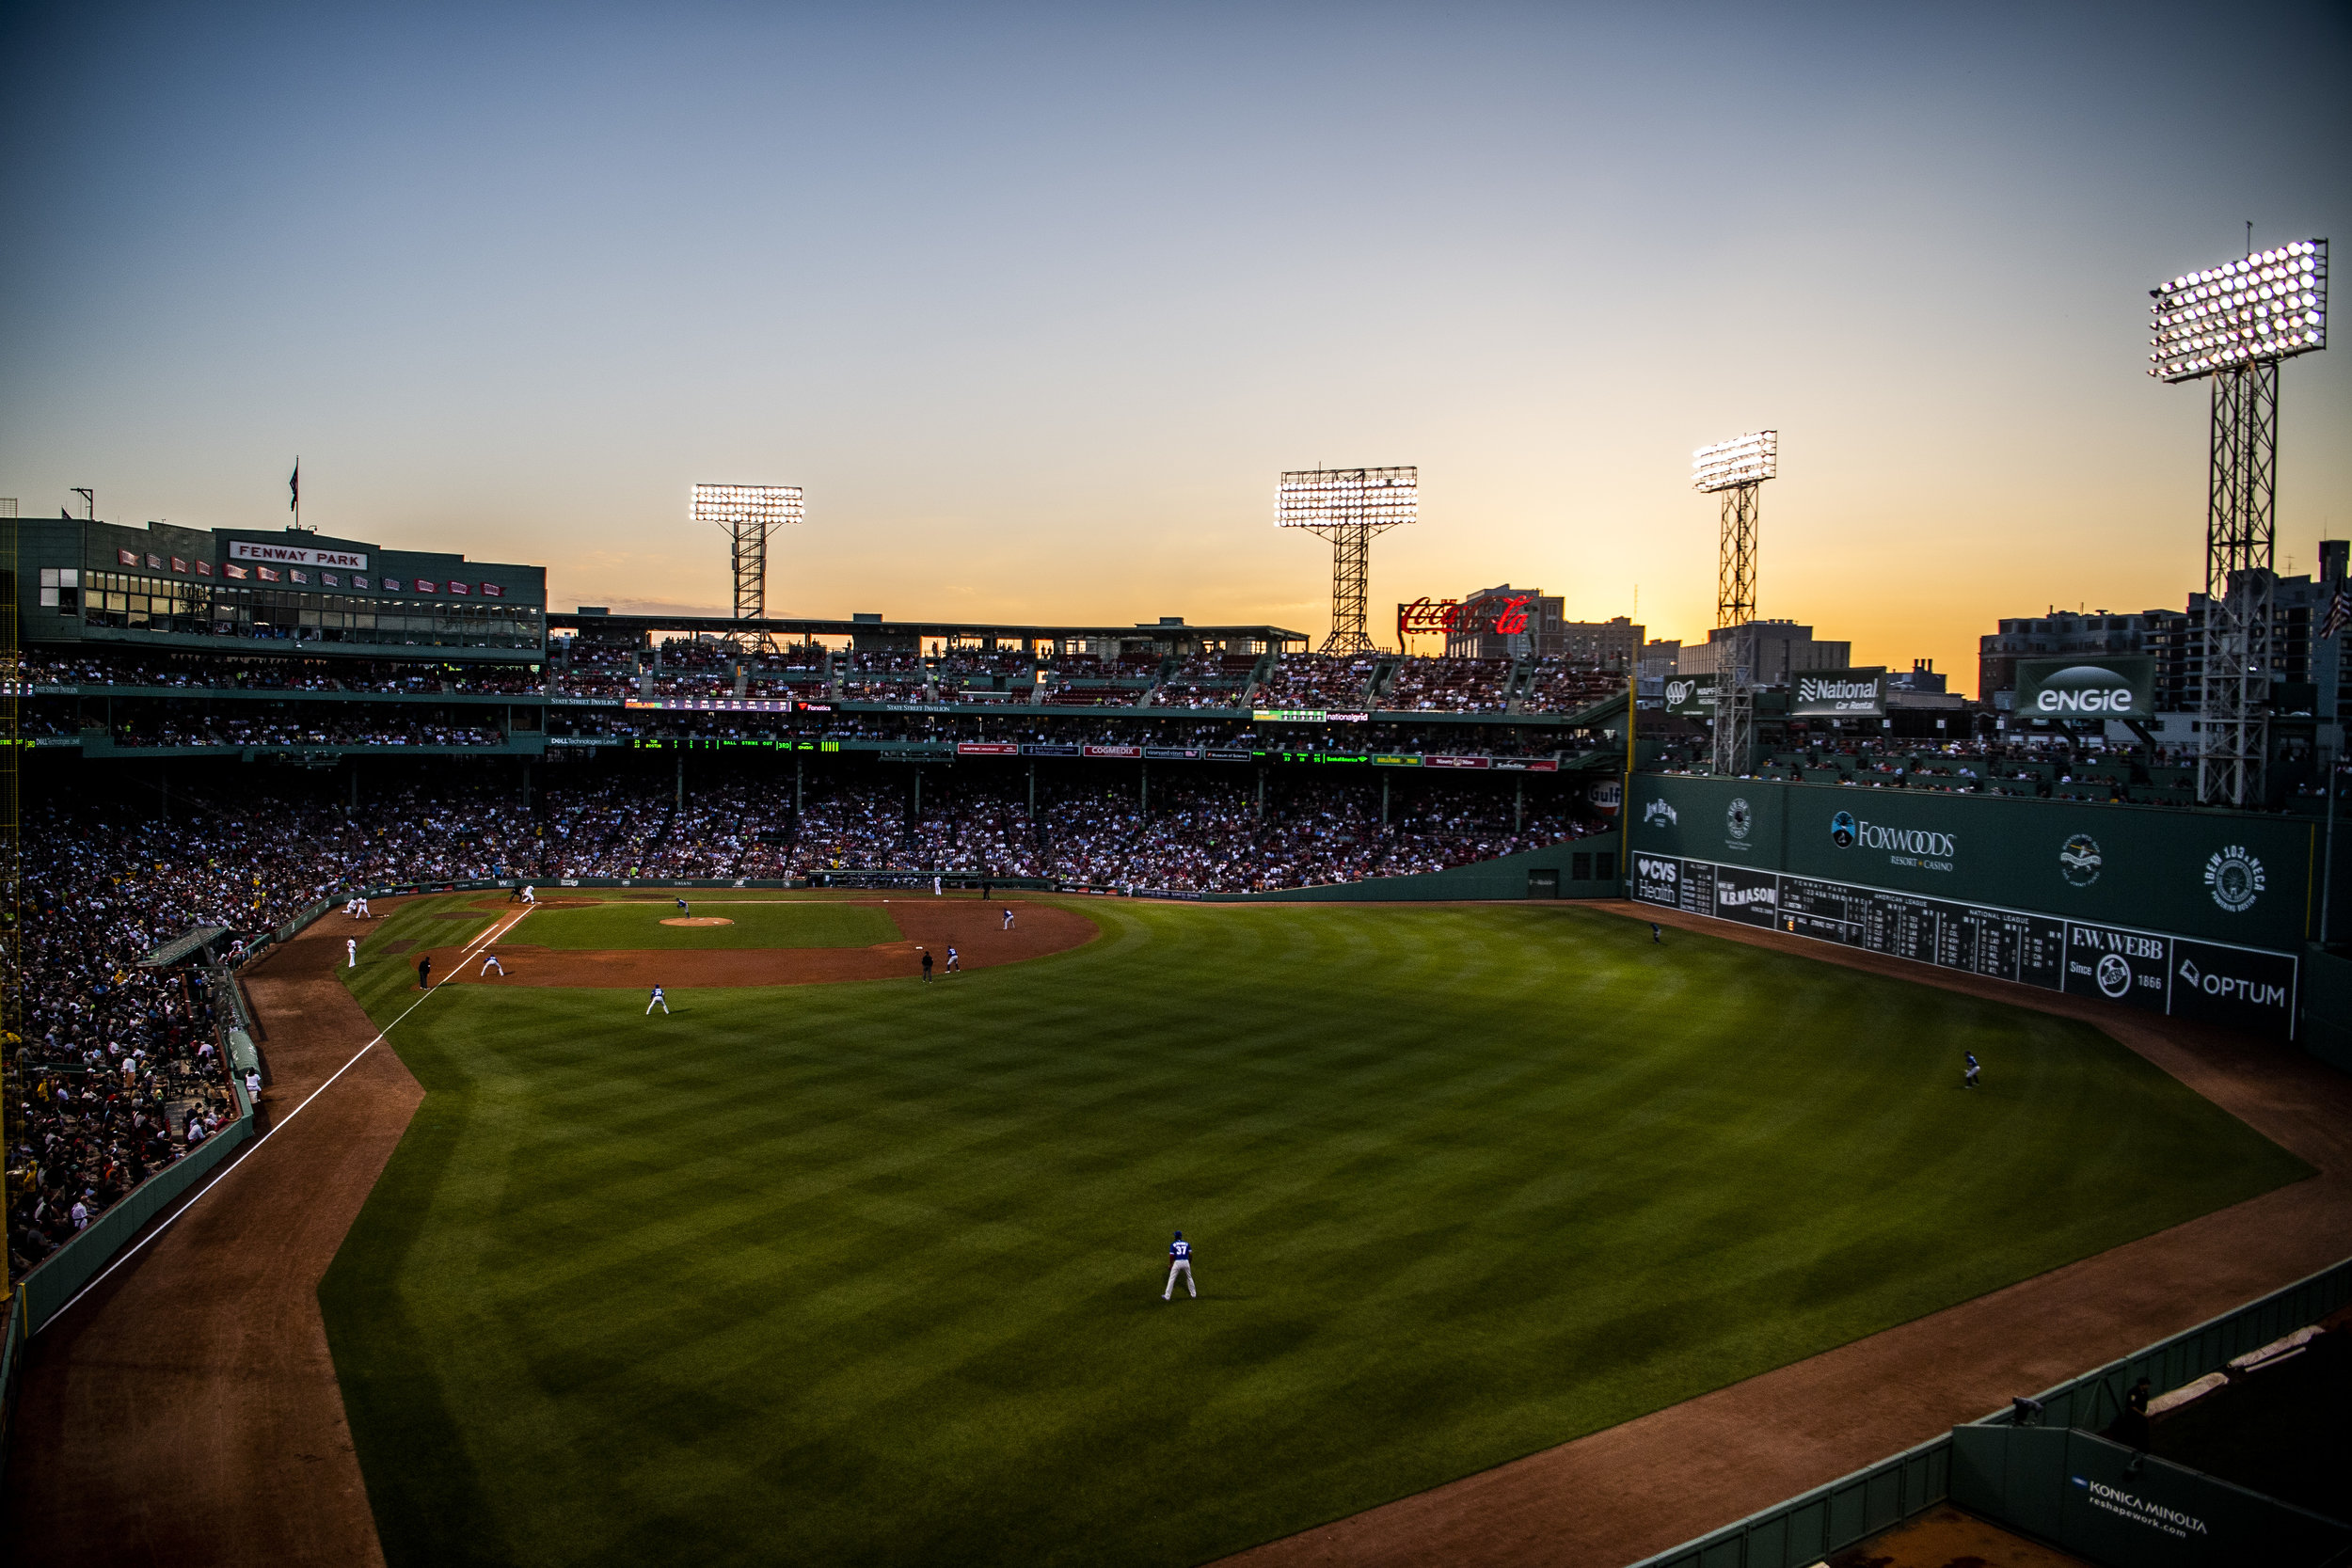 May 29, 2018, Boston, MA: The sun sets over the ballpark as the Boston Red Sox face the Toronto Blue Jays at Fenway Park in Boston, Massachusetts on Tuesday, May 29, 2018. (Photo by Matthew Thomas/Boston Red Sox)